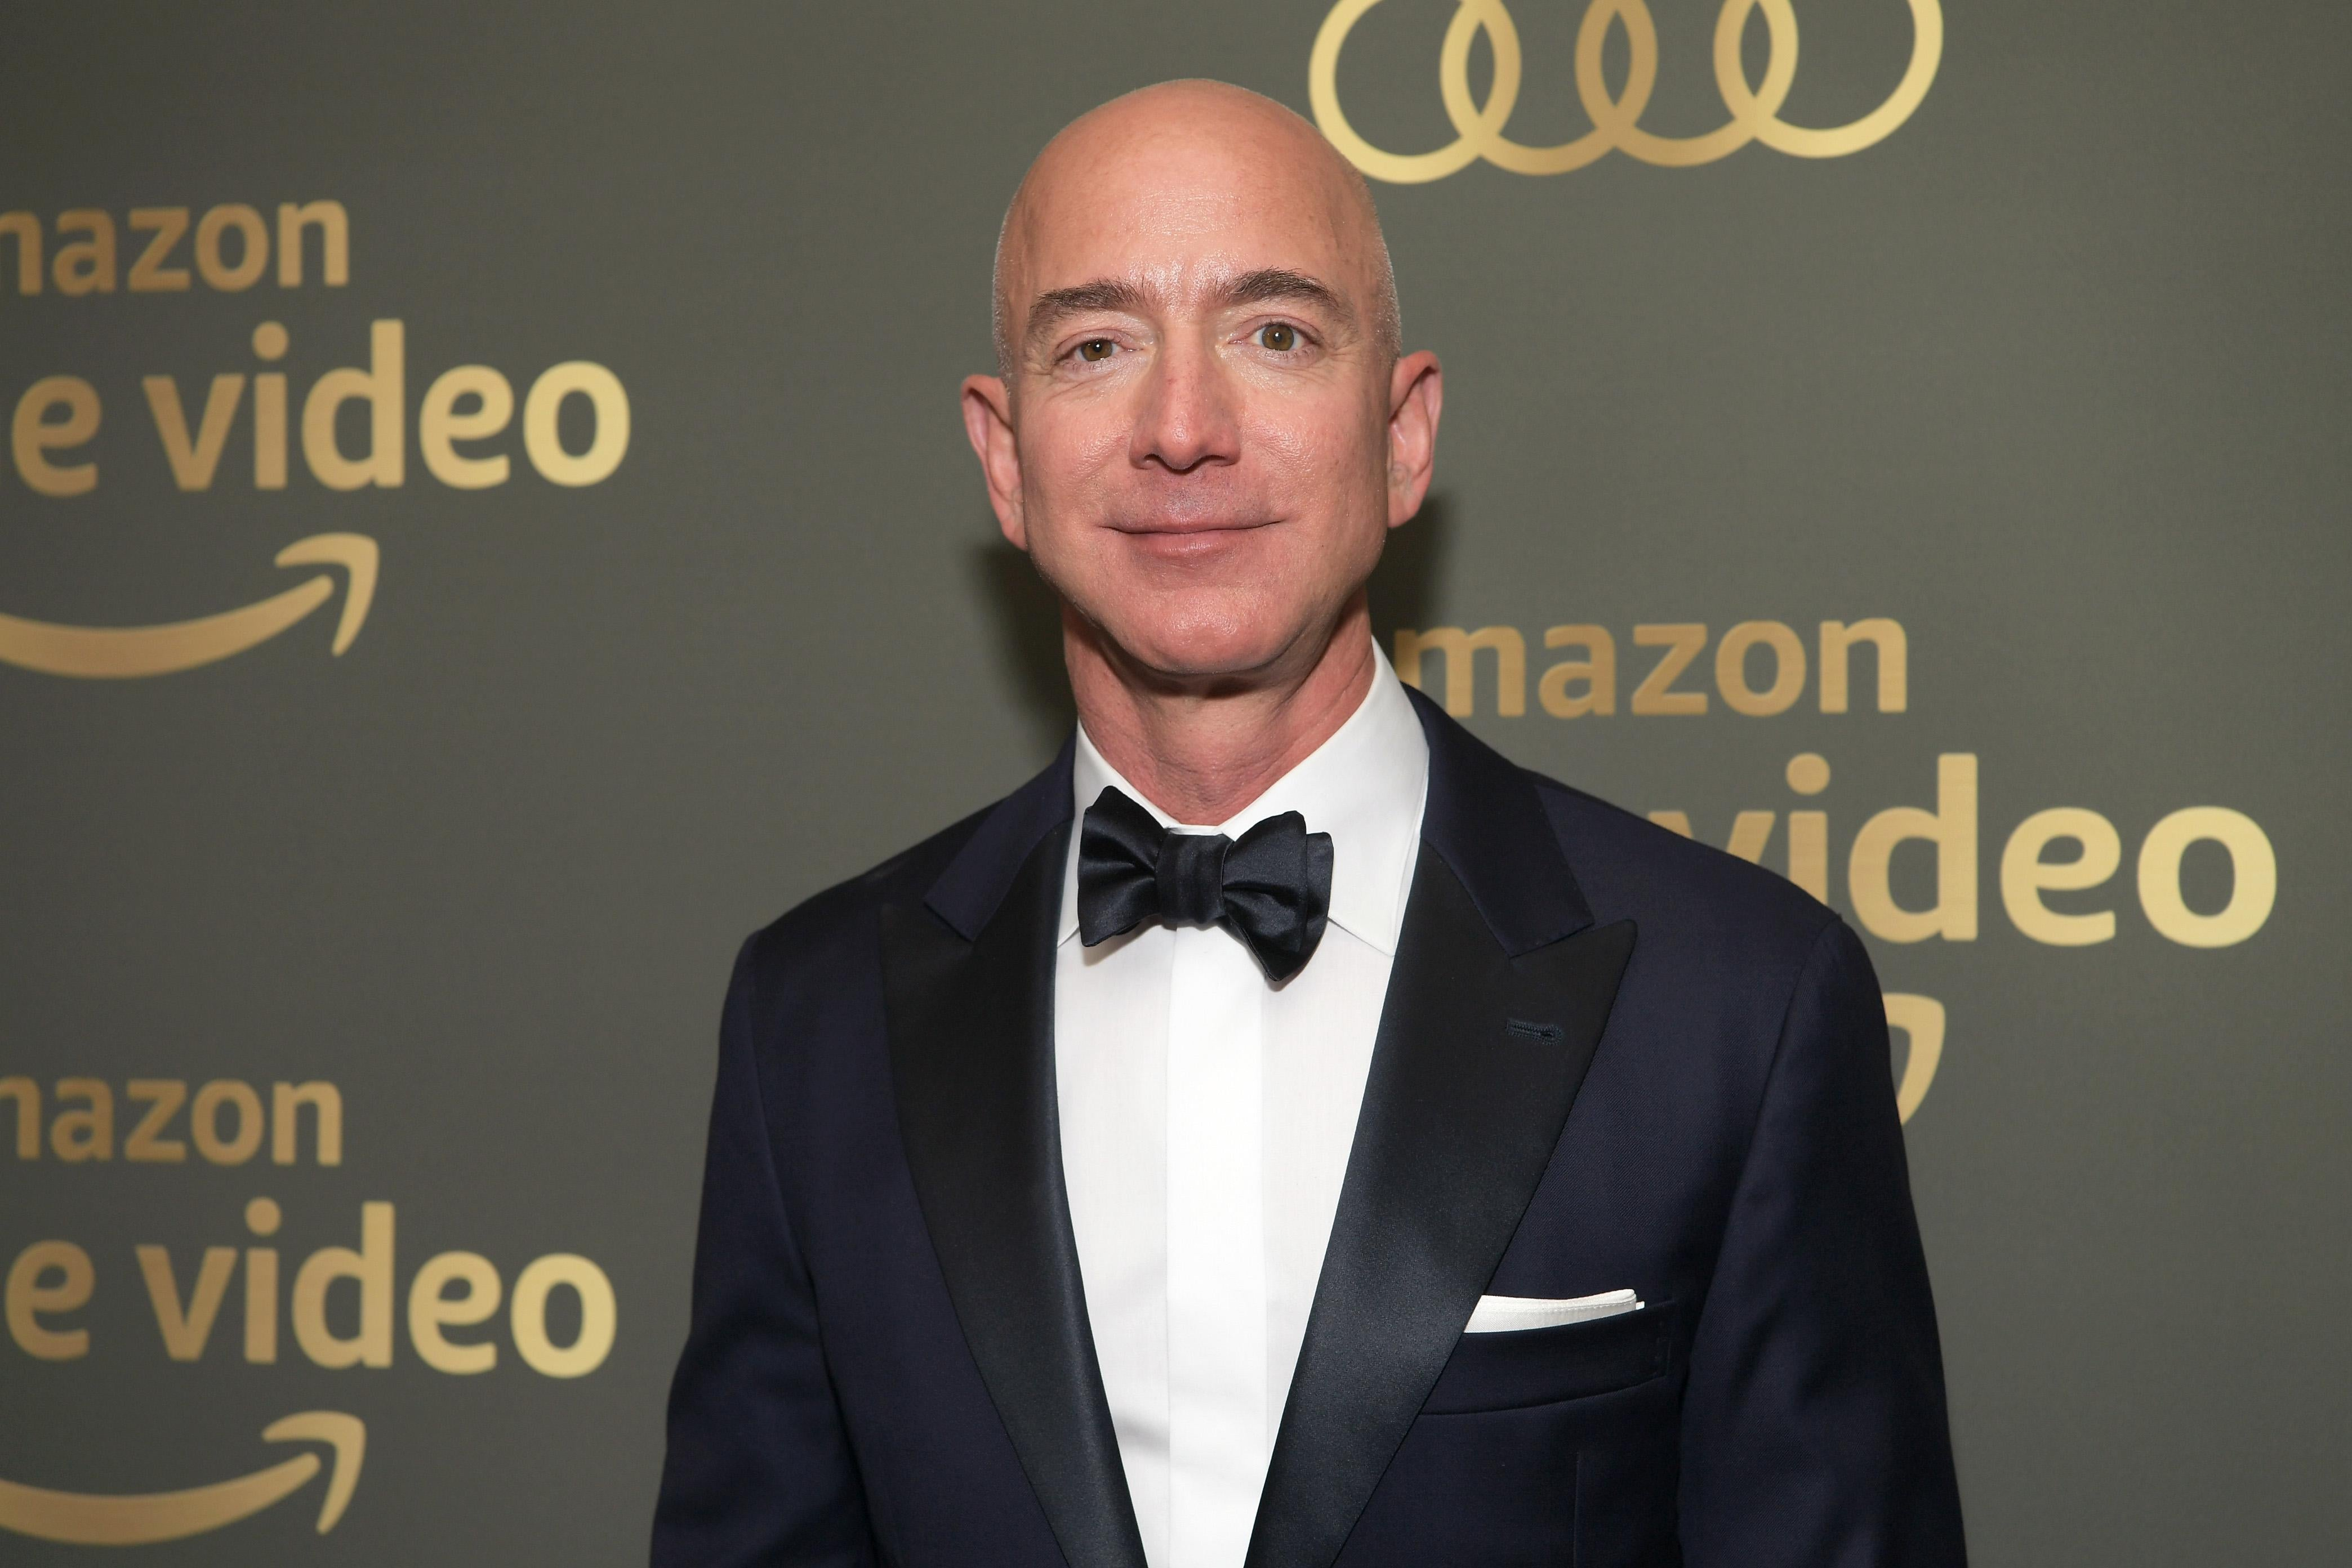 Jeff Bezos in a tux in front of an Amazon Prime Video backdrop.